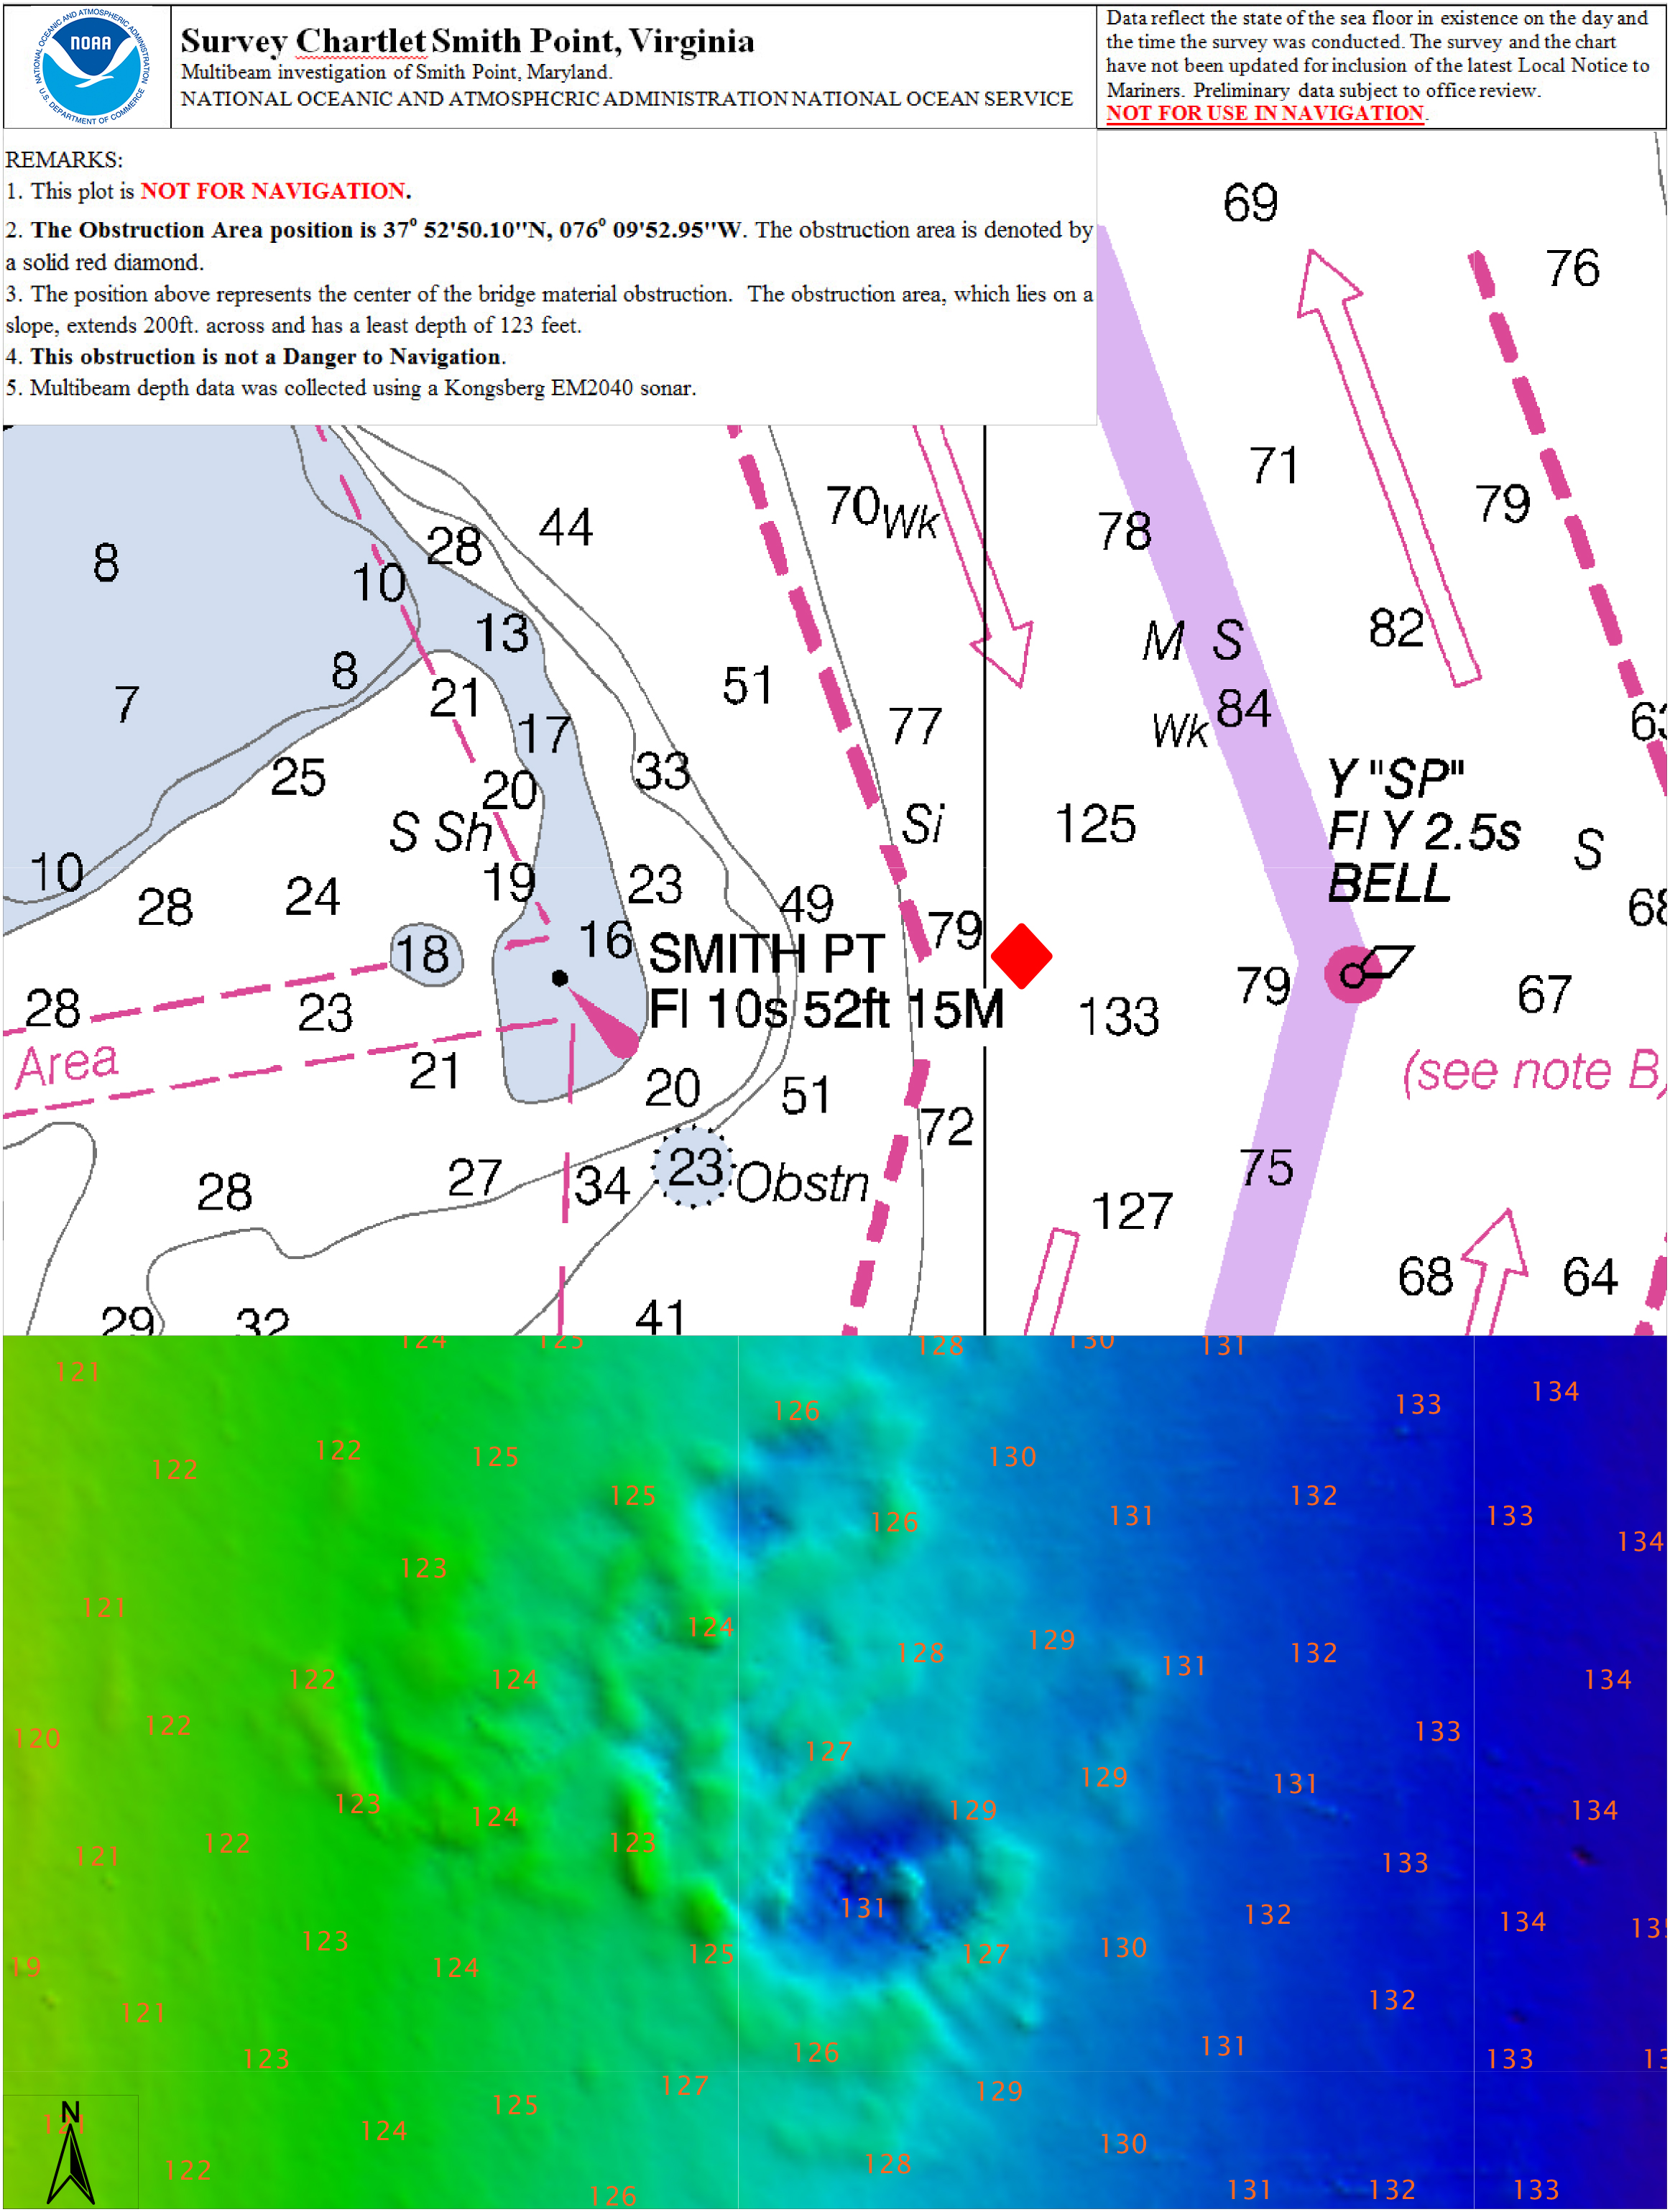 Smith_Point_Chartlet